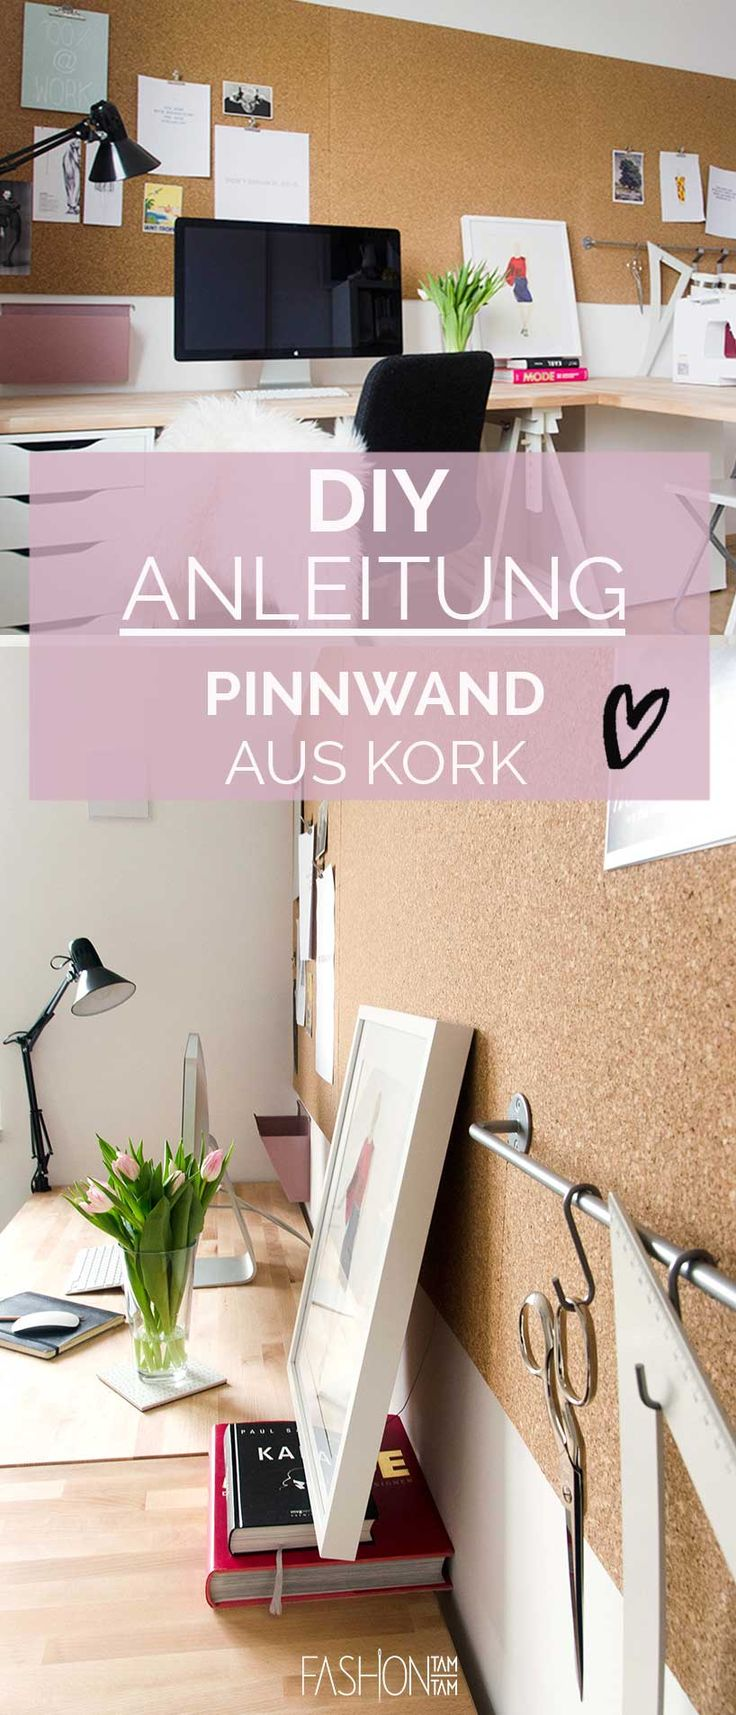 die besten 25 pinnwand kork ideen auf pinterest pinwand. Black Bedroom Furniture Sets. Home Design Ideas